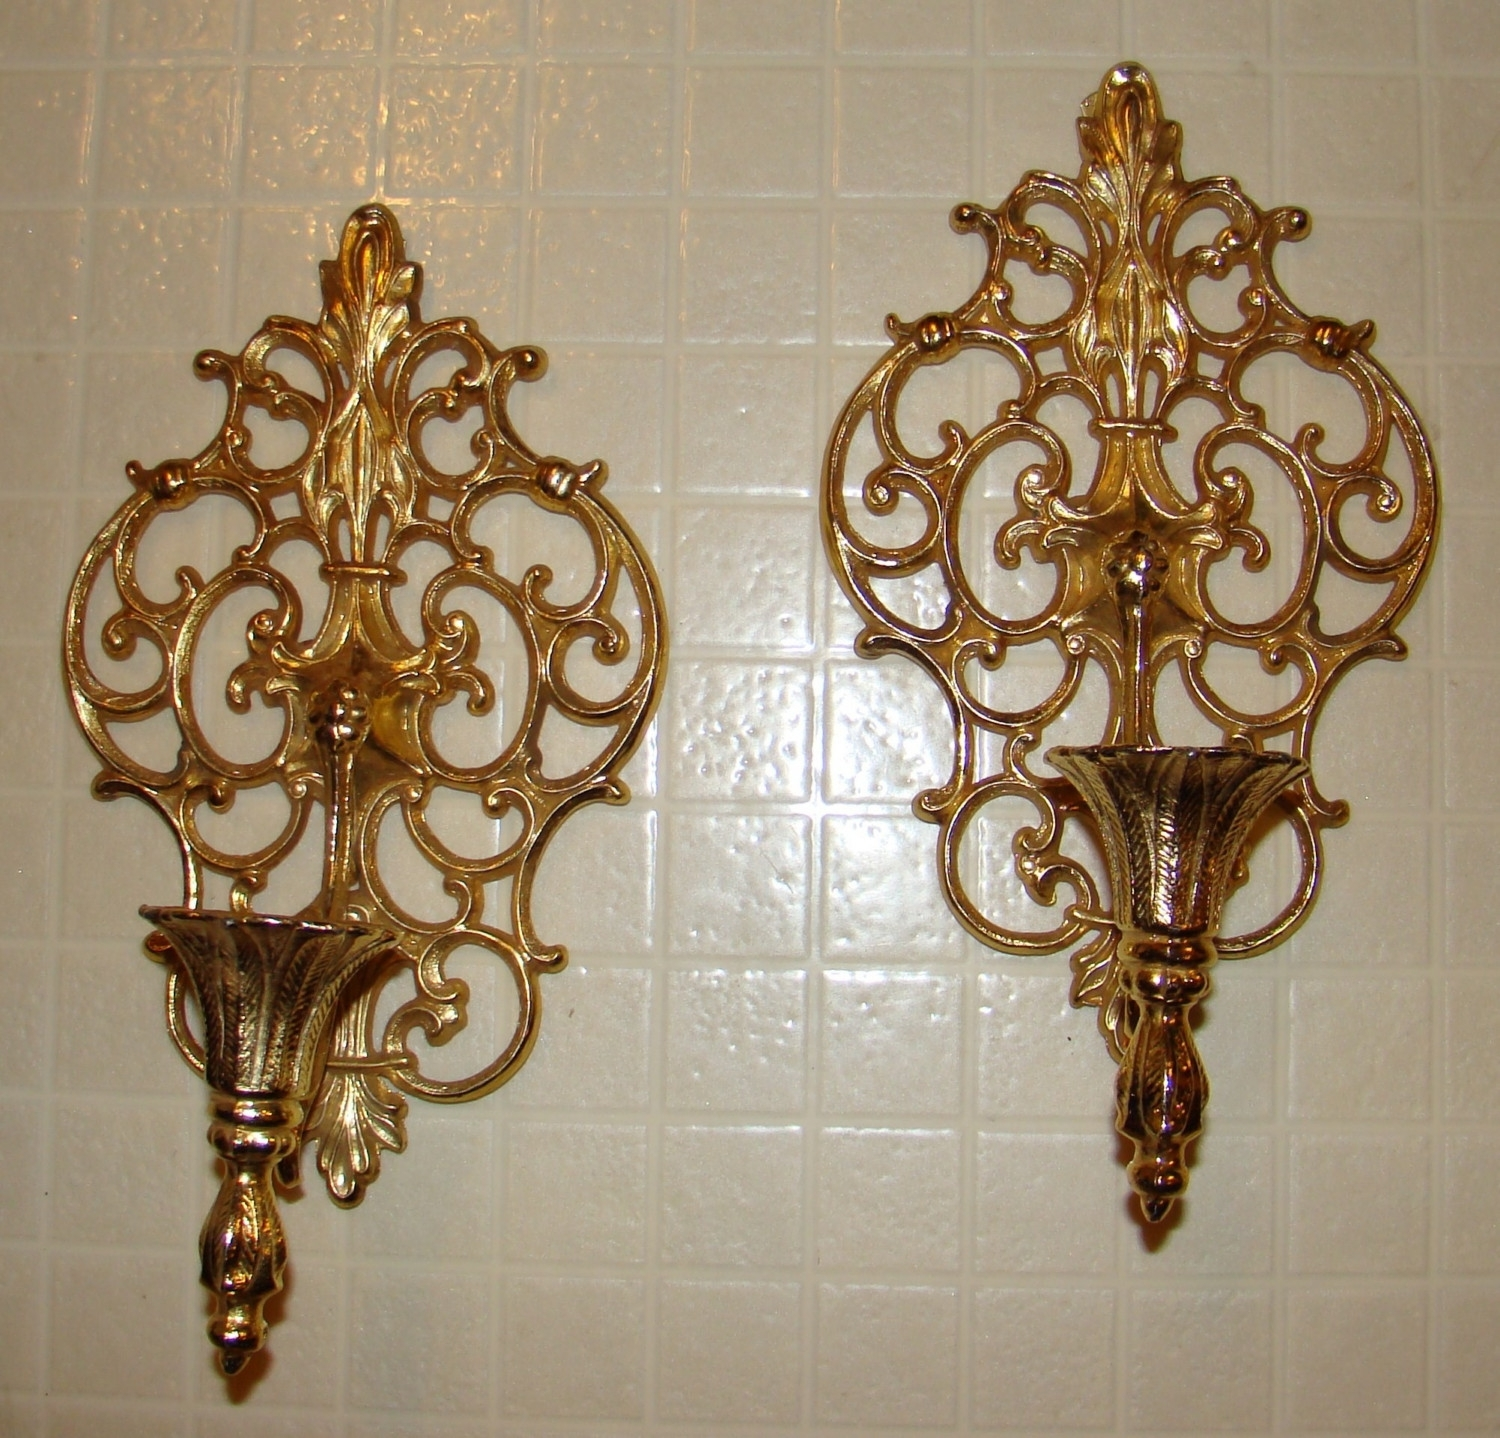 Iron Scroll Wall Decor Cafe | Home Decor And Design Regarding Latest Gold Wall Accents (View 8 of 15)